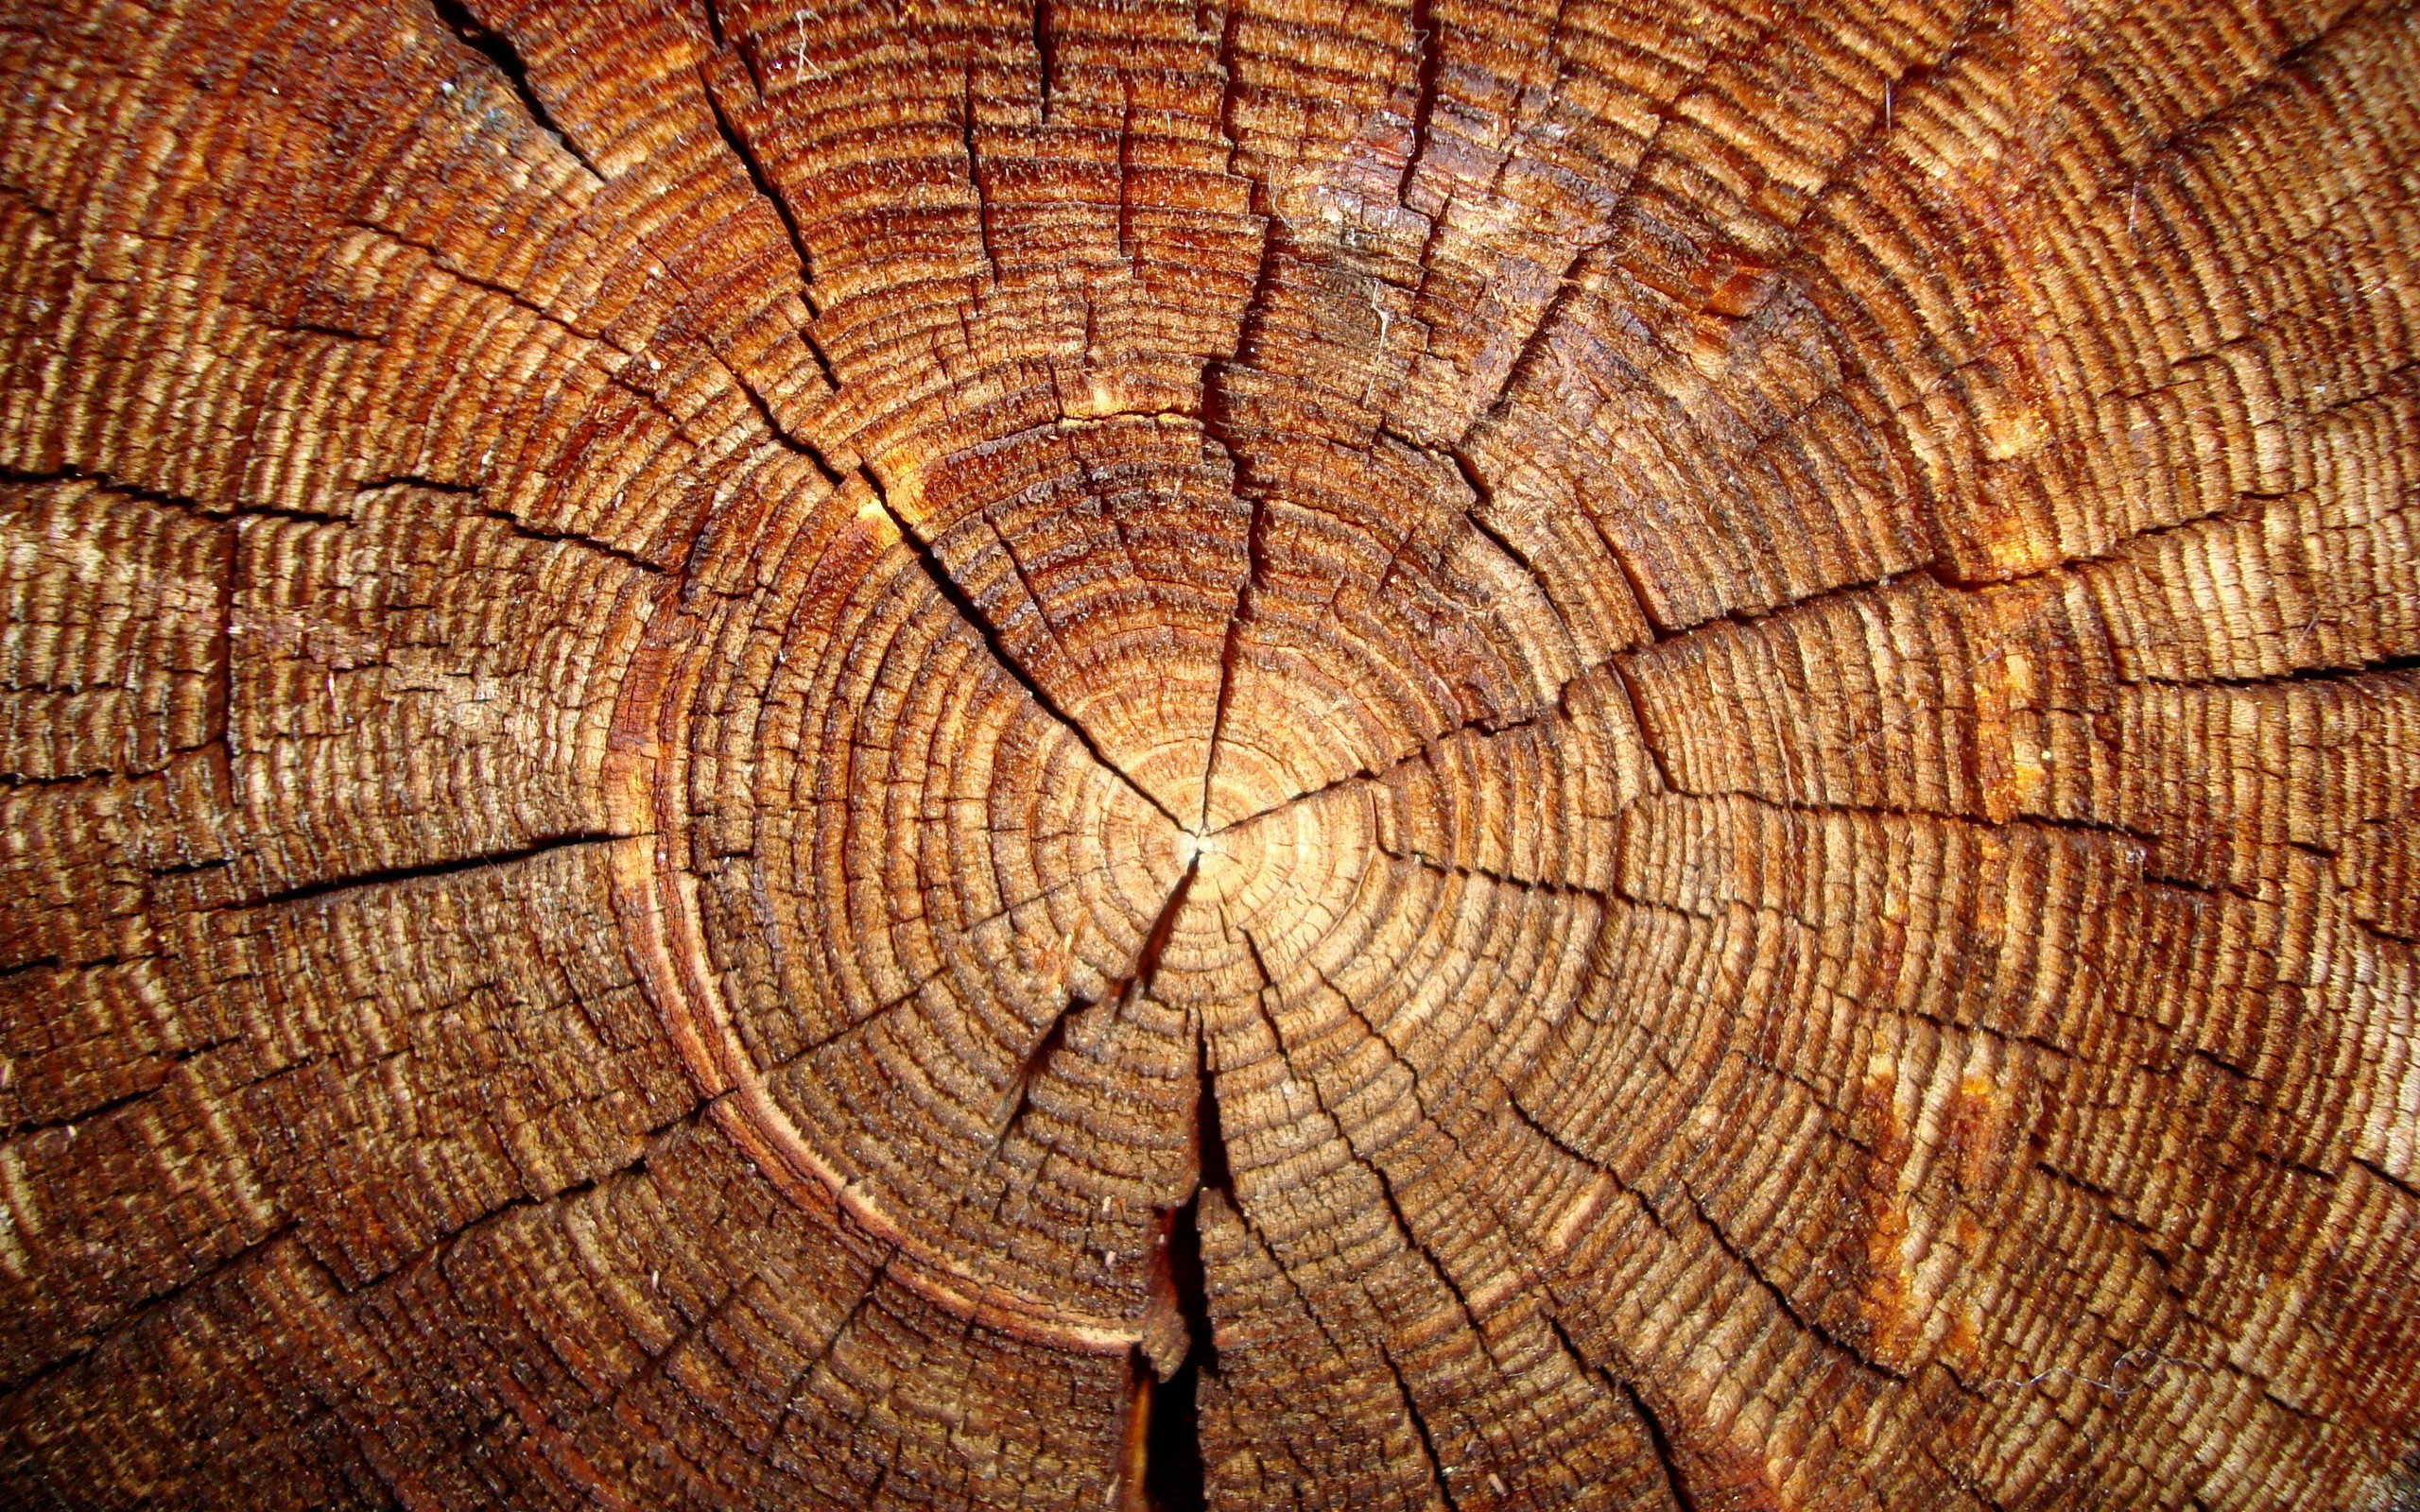 Wood hd wallpaper 50 hd wood wallpapers for free download voltagebd Choice Image